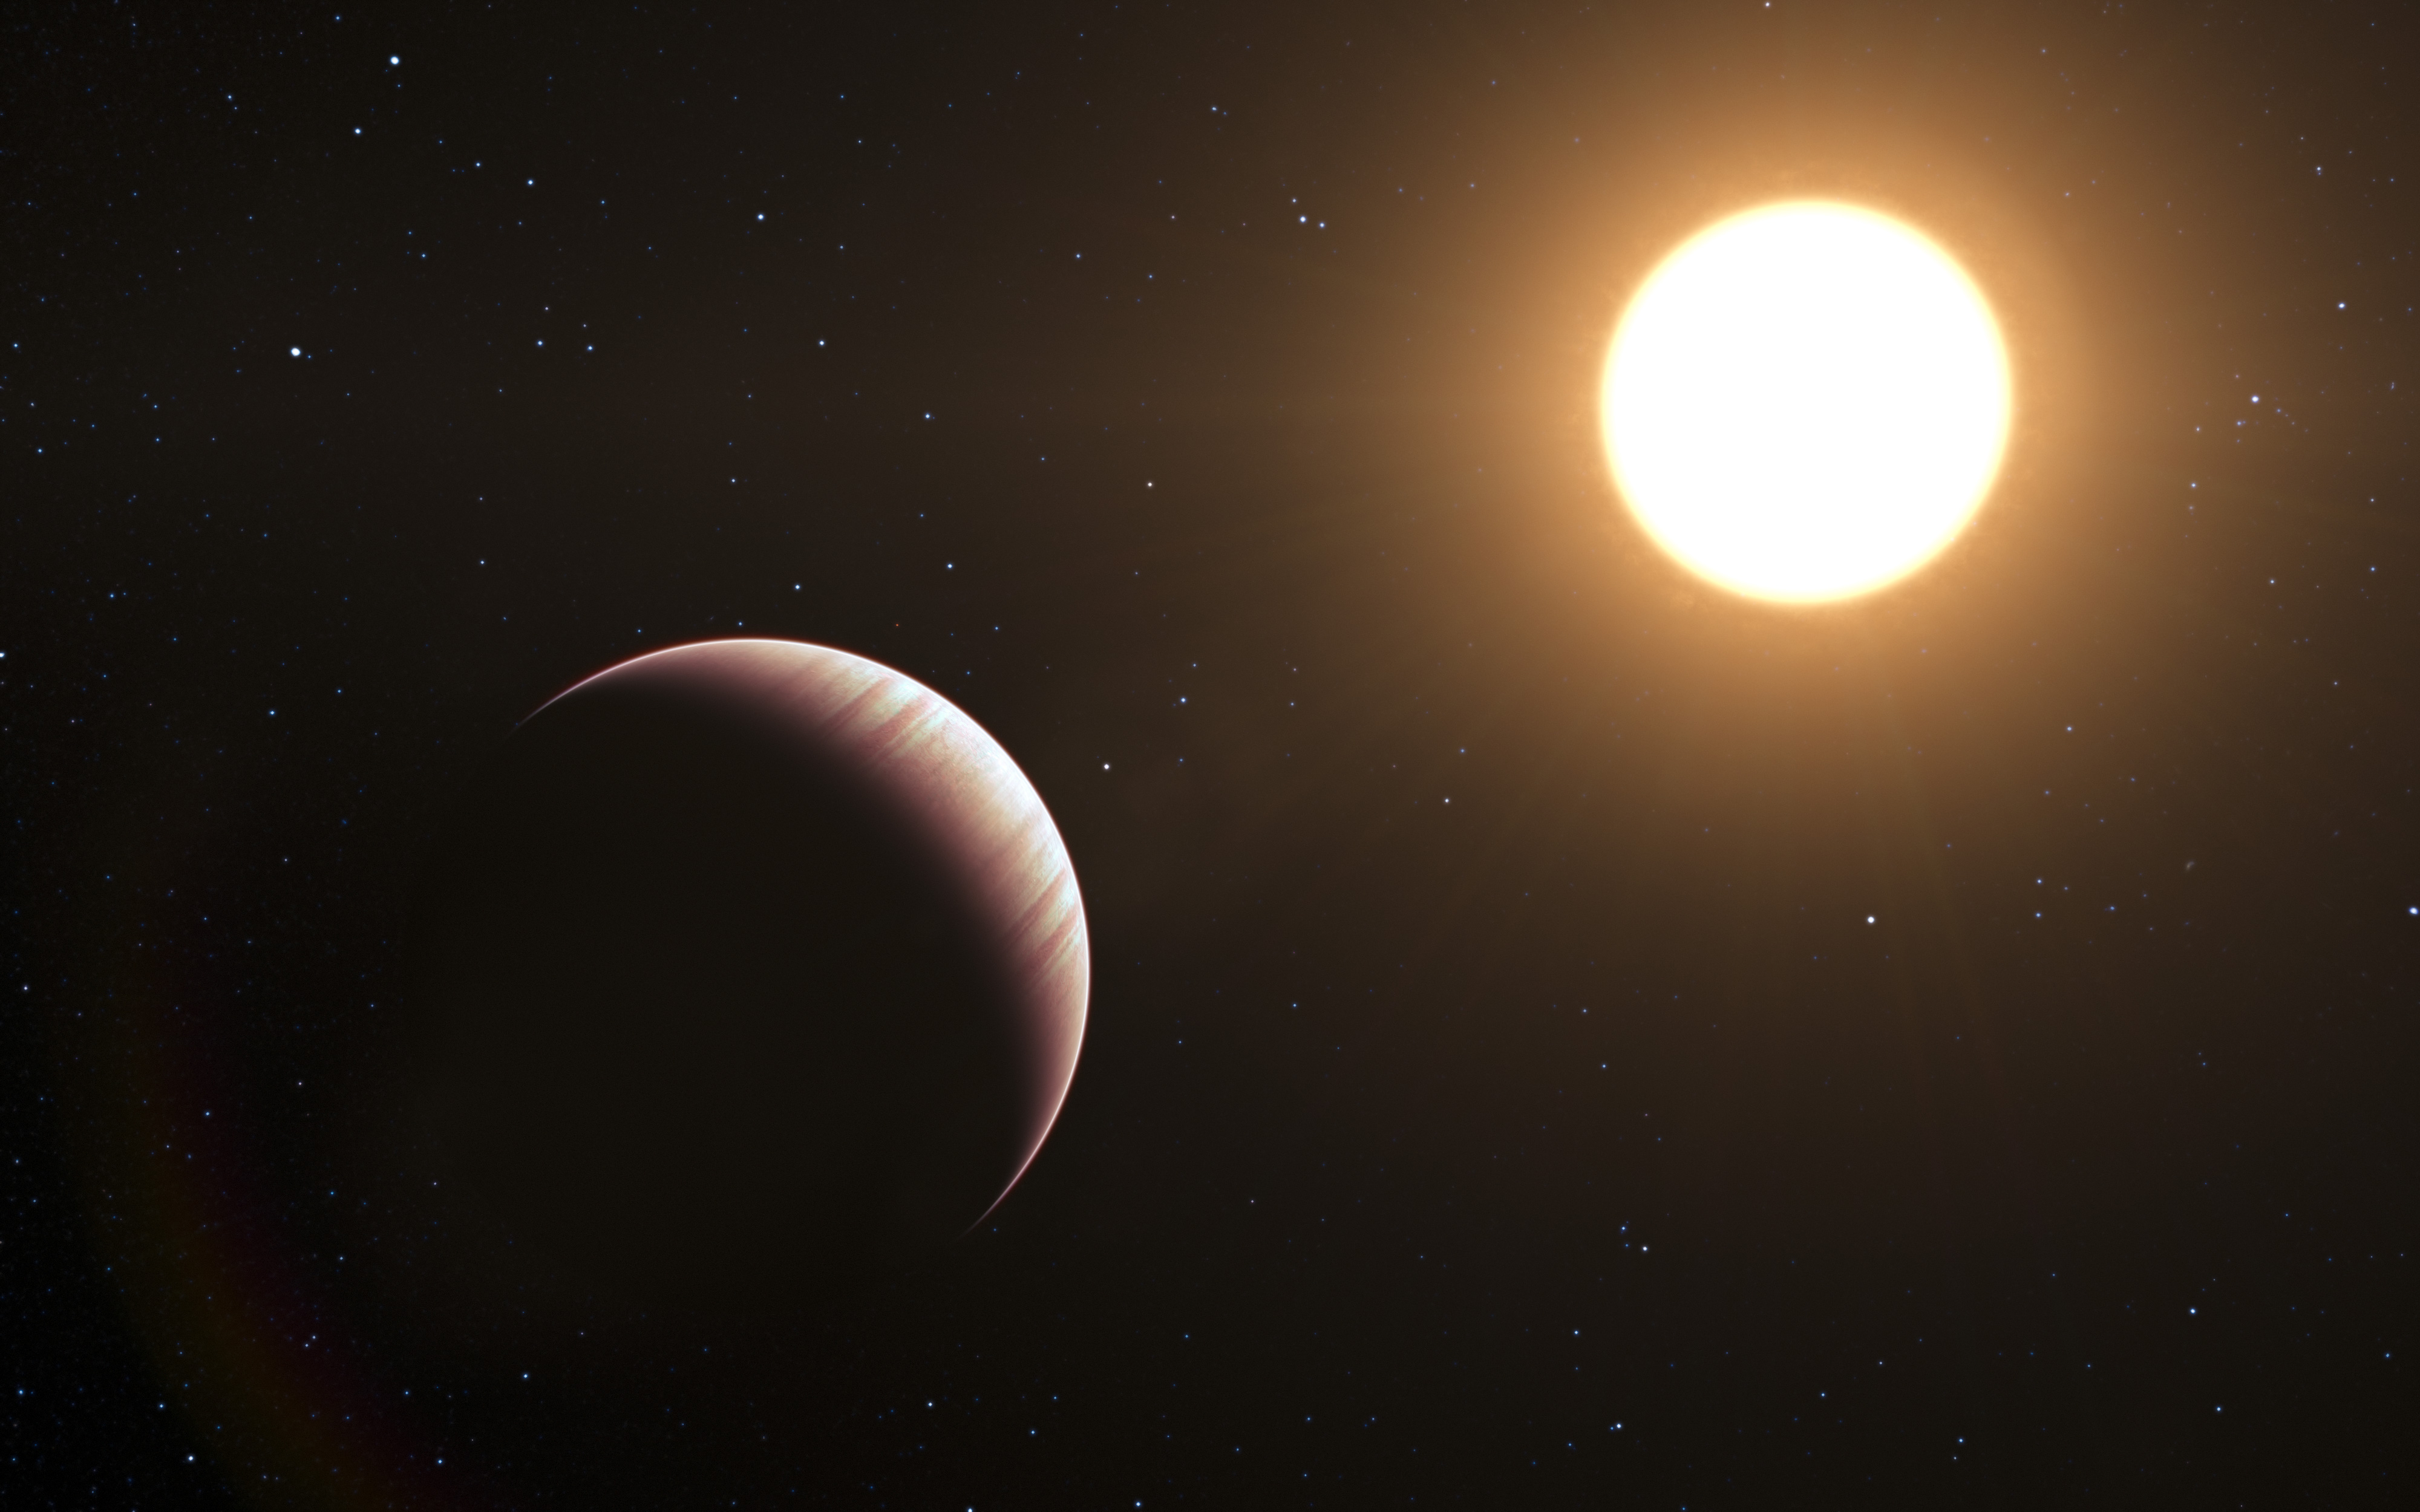 'Hot Jupiter' Planet's Atmosphere Revealed by New Method